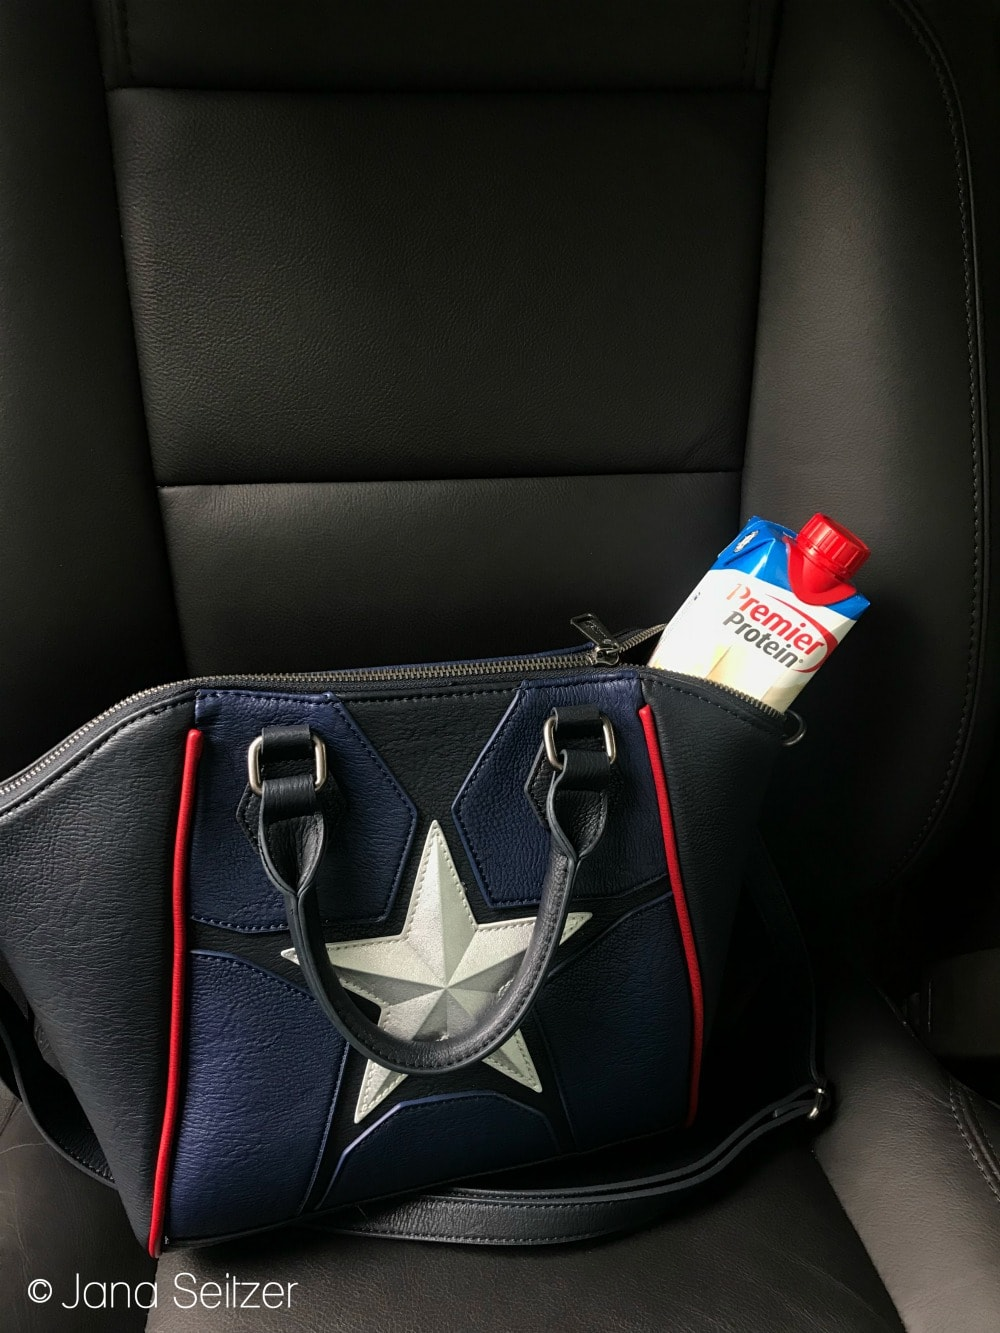 Stay Healthy On-the-Go with Premier Protein